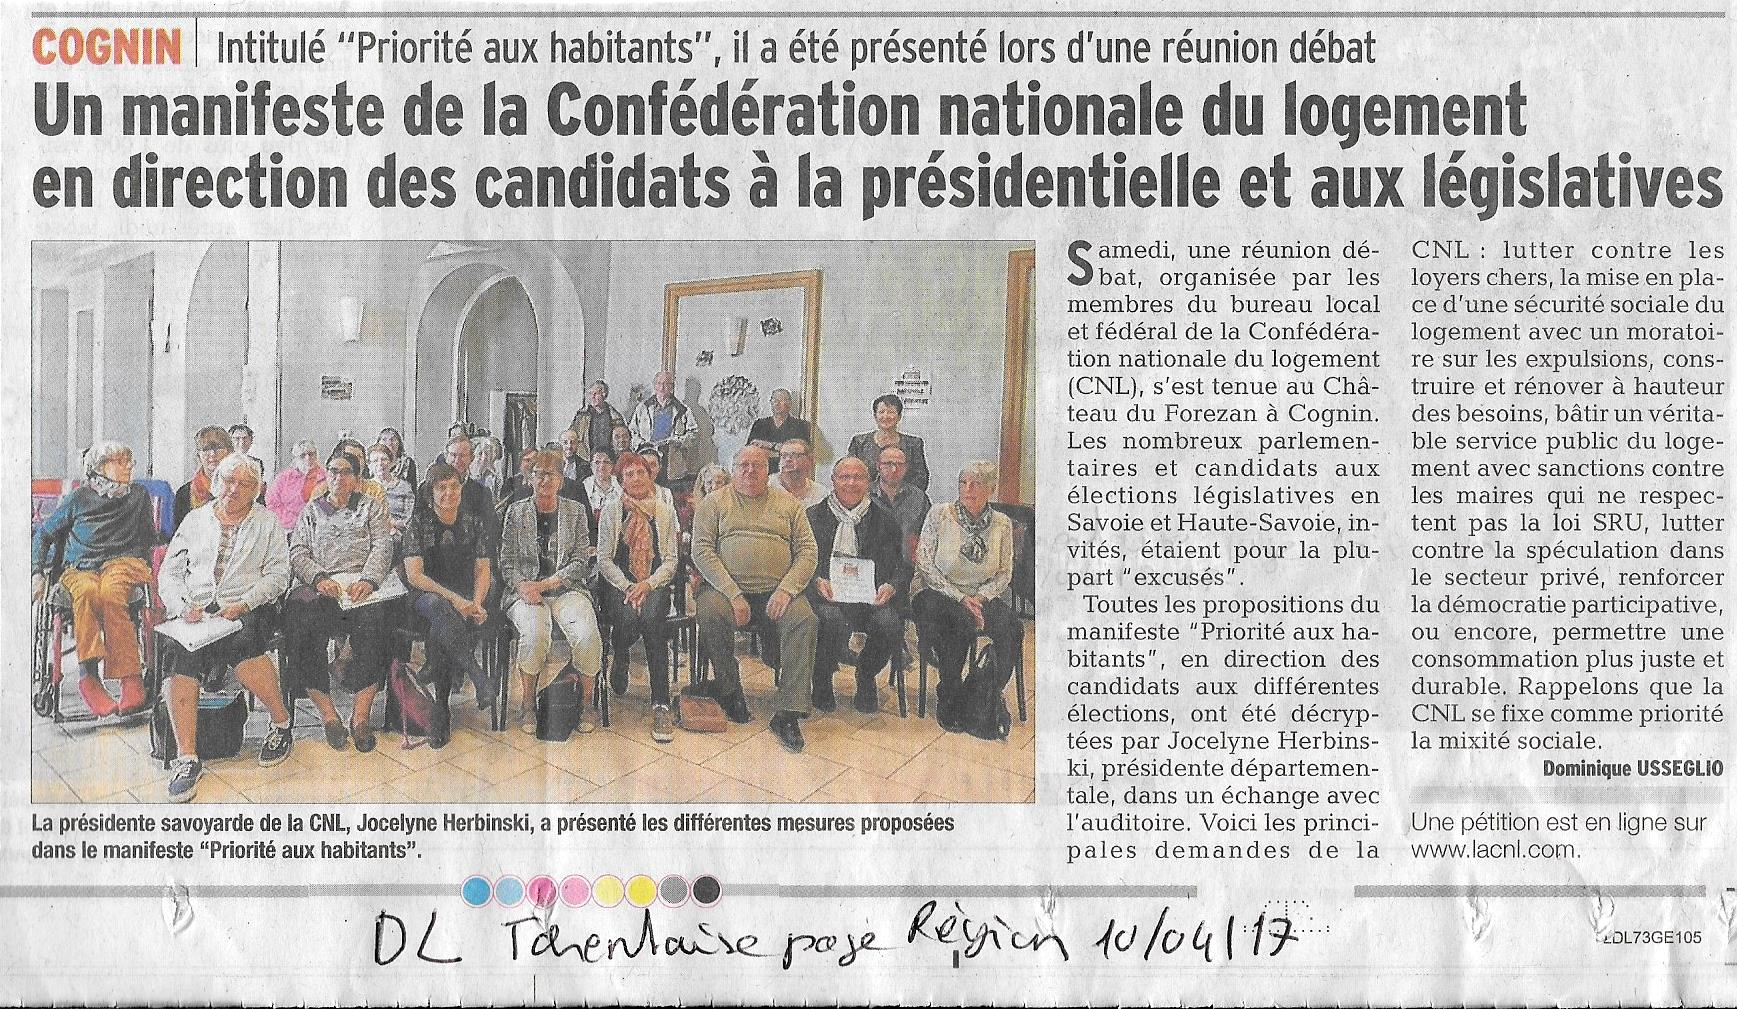 0410_Article DL Tarentaise page Région 10.04.2017